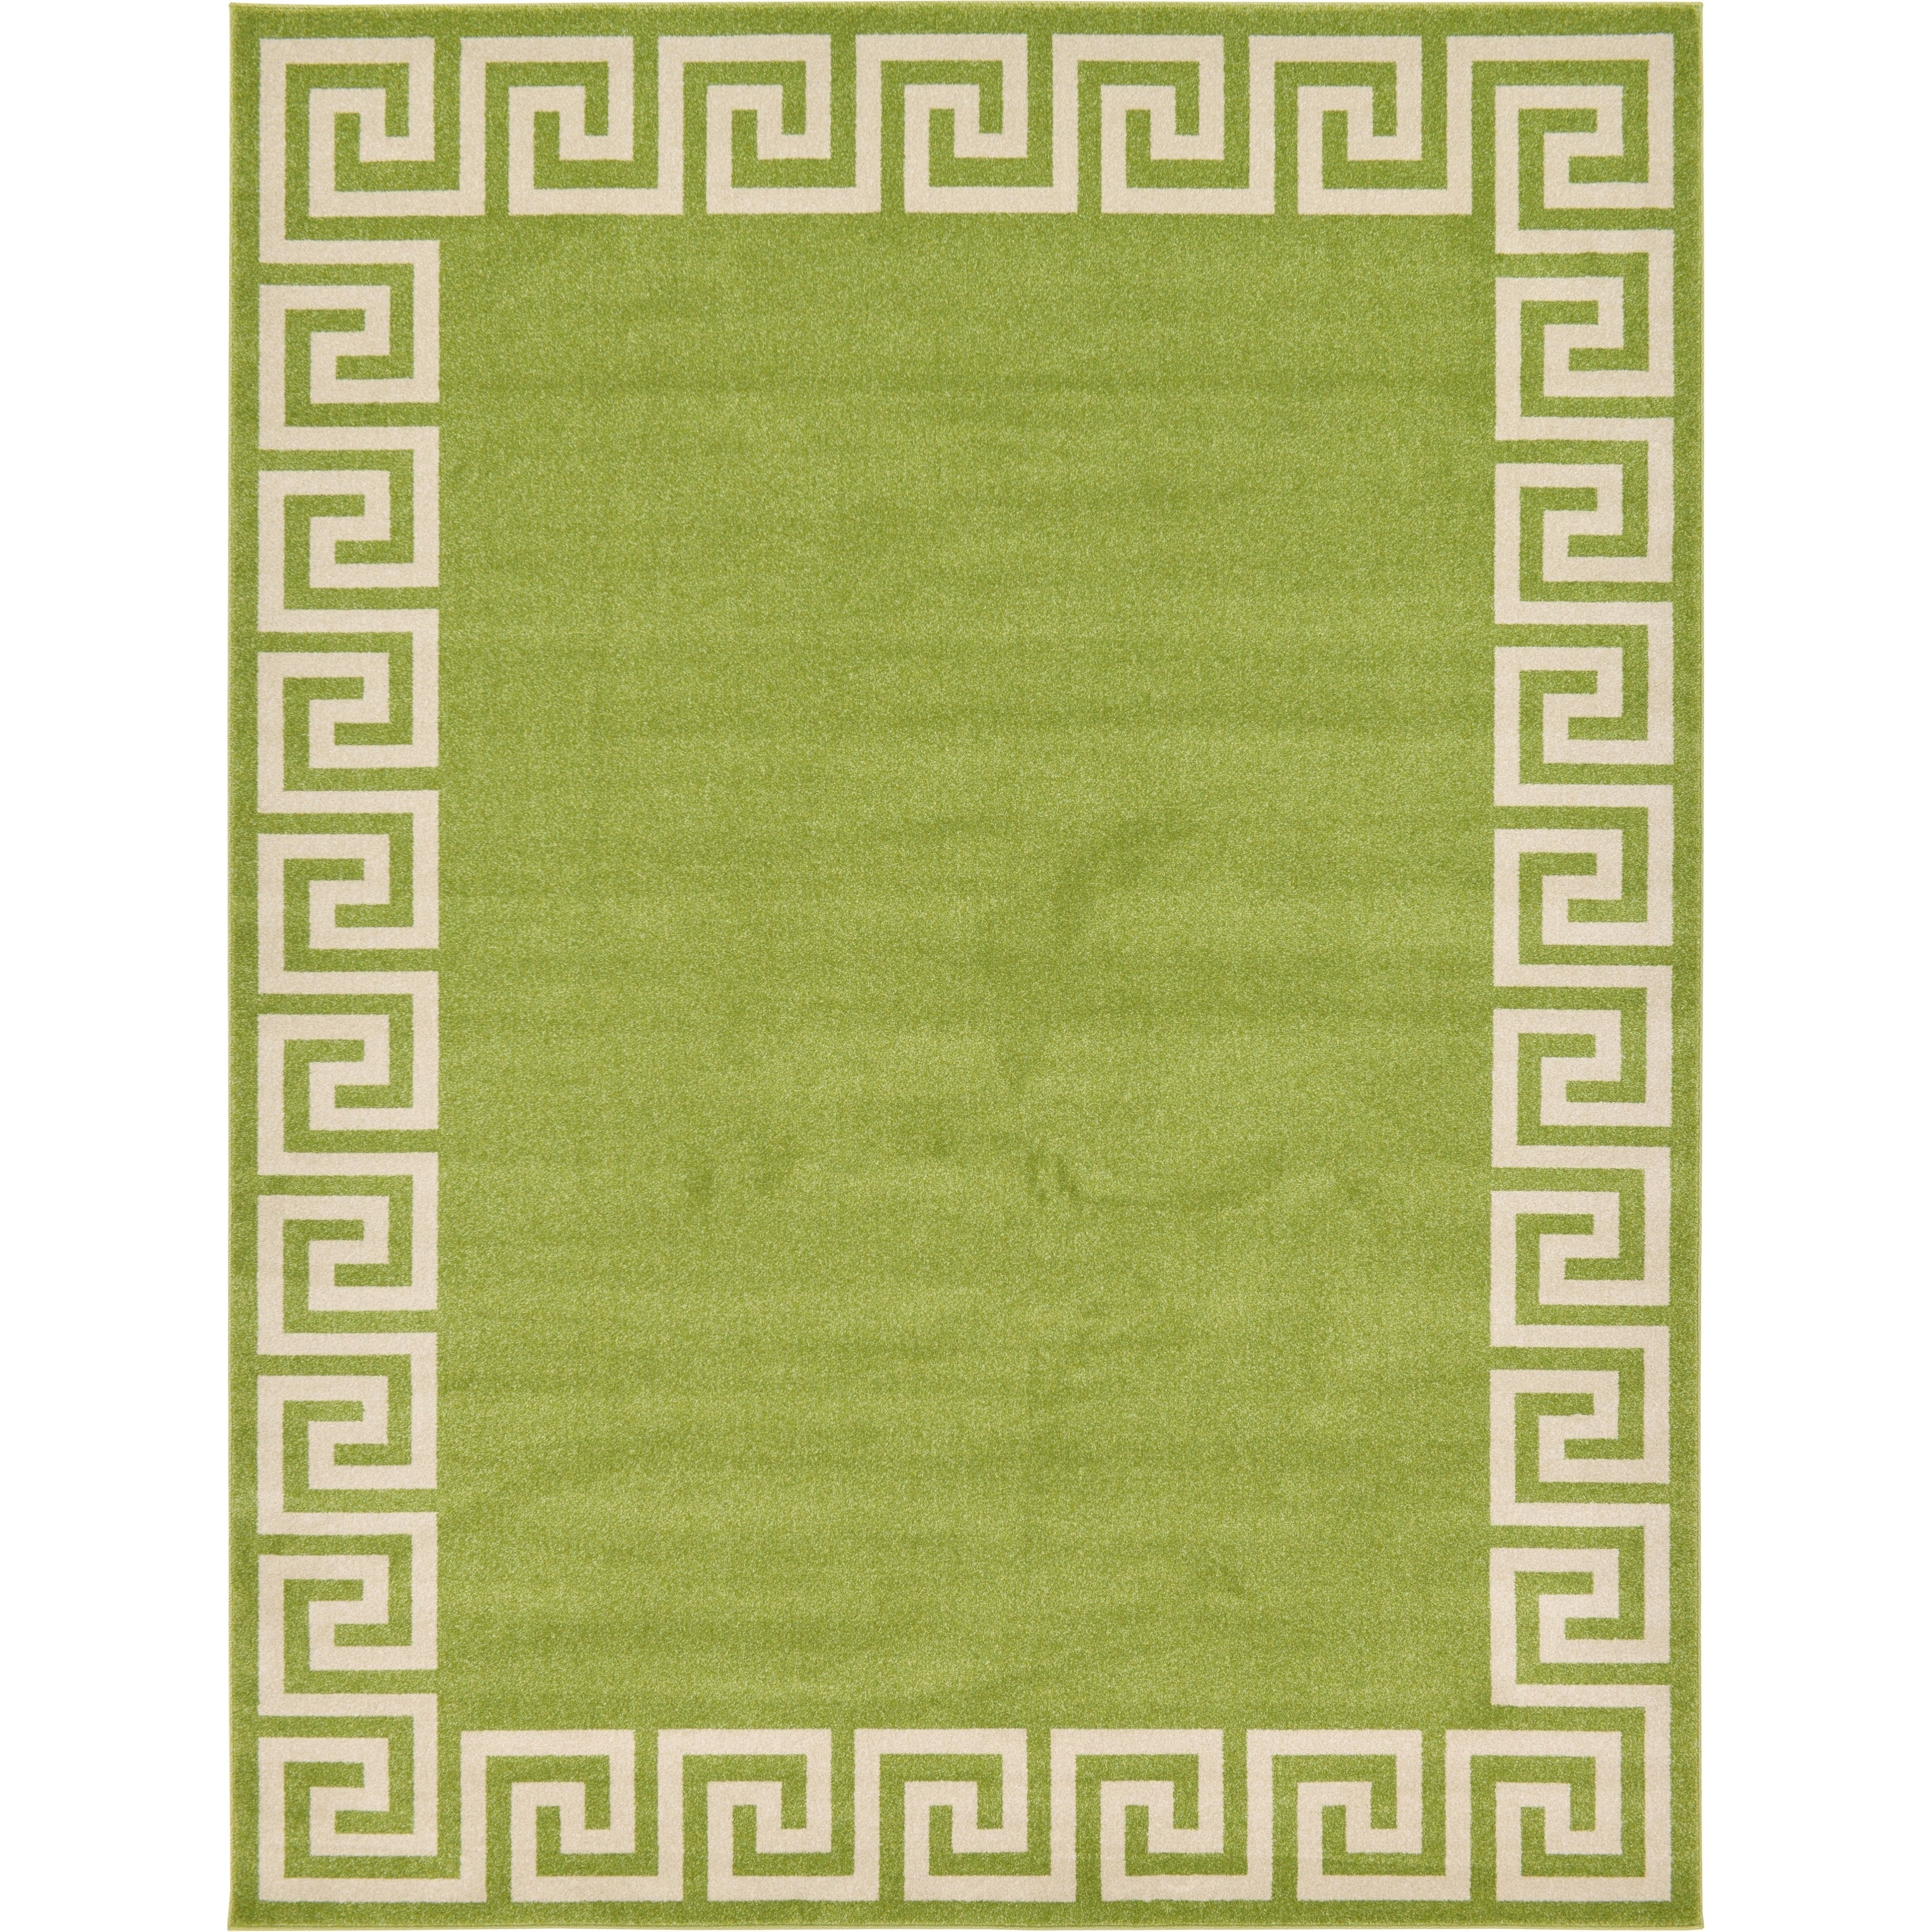 Green Geometric Area Rugs Online At Com Our Best Deals